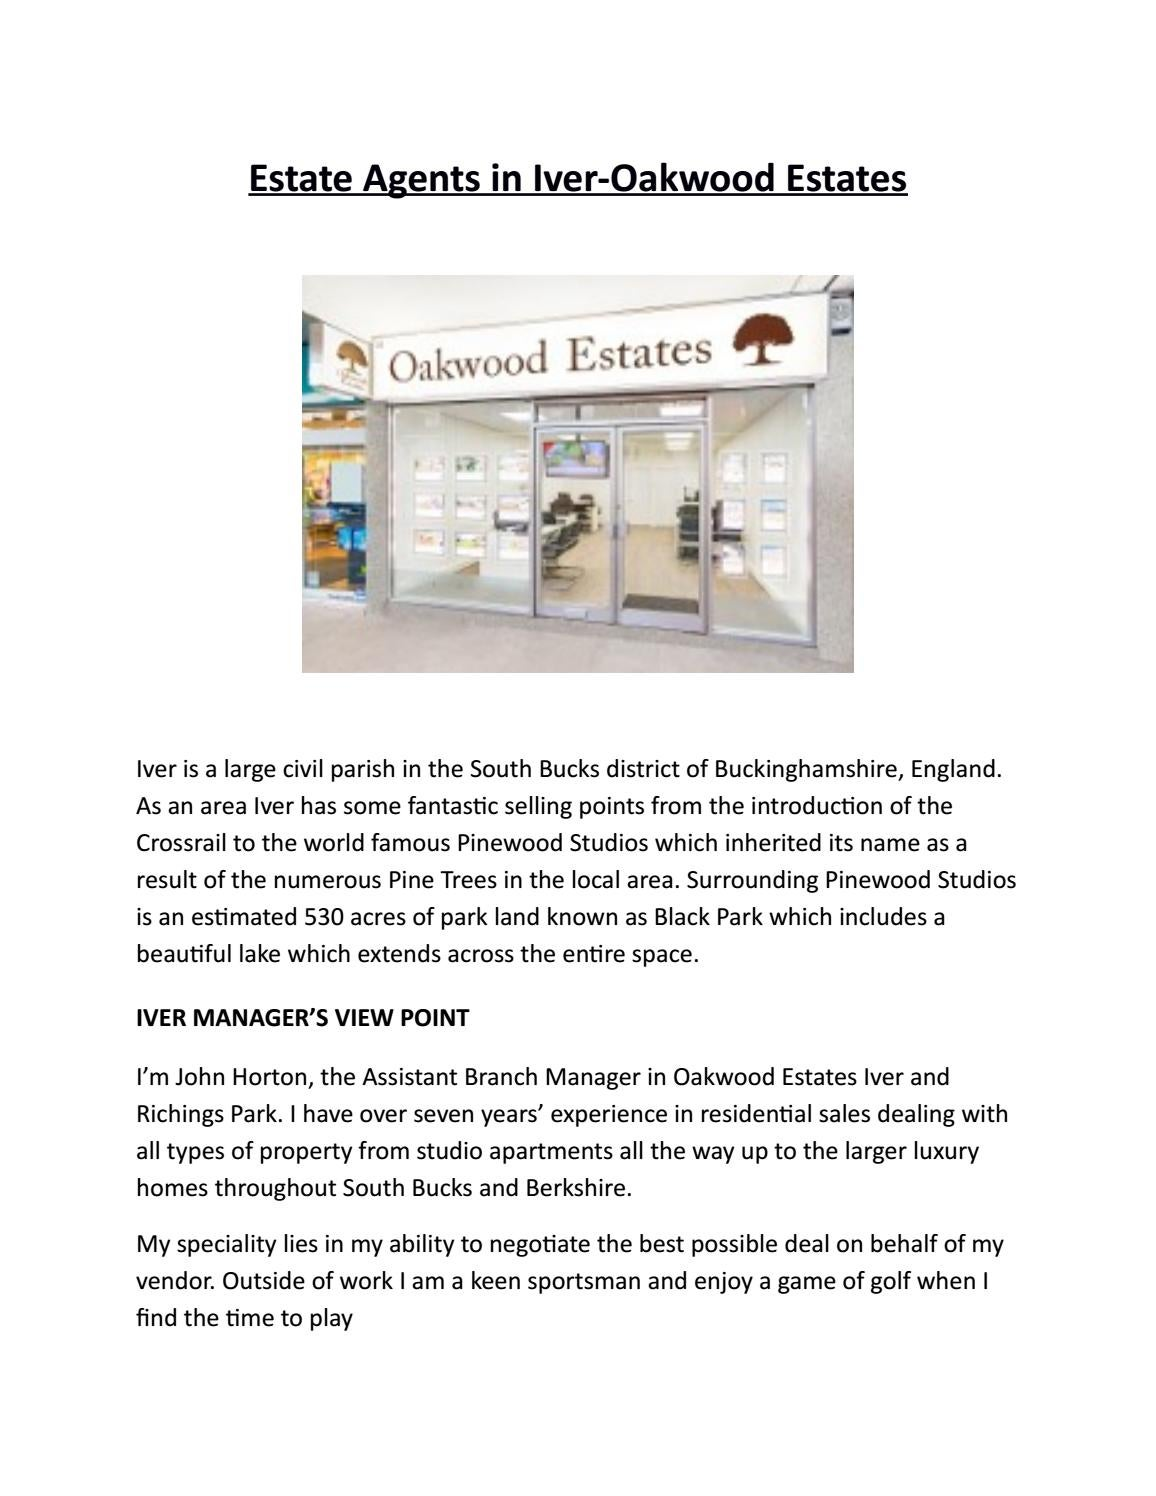 Estate agents in iver oakwood estates by Vicky Carney - issuu